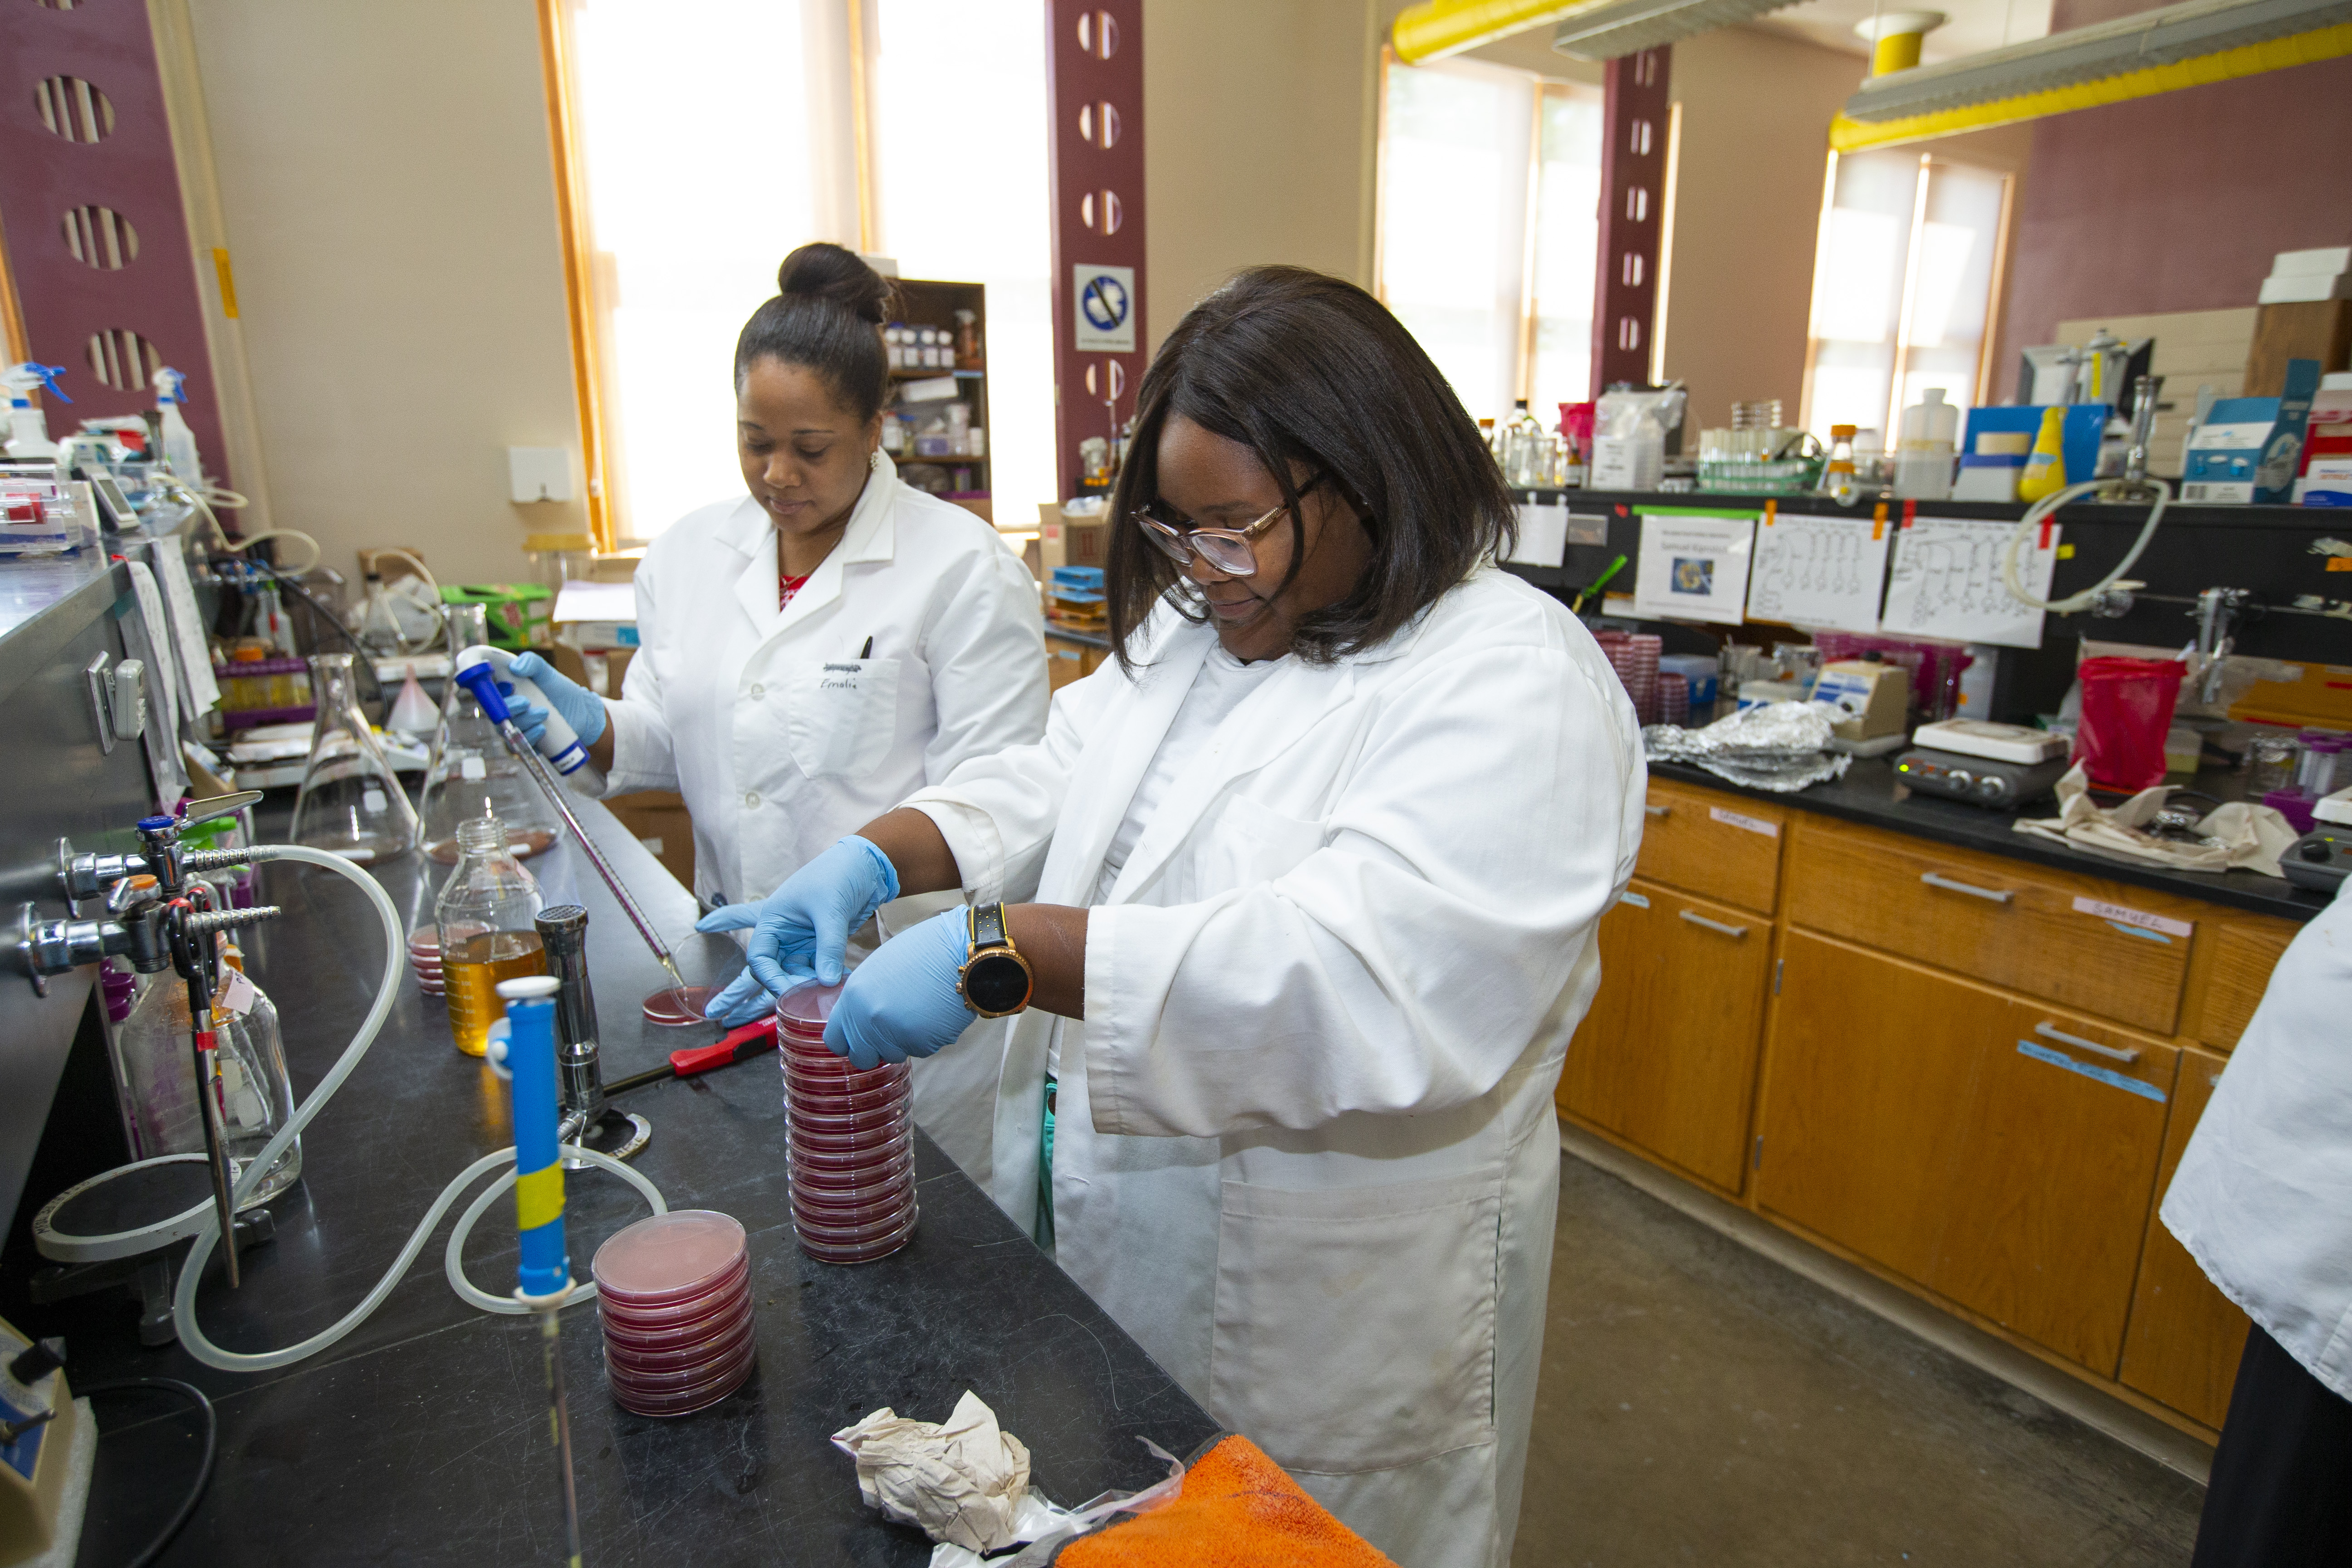 Food Science Attracts Students To Pursue Research With Gwc Summer